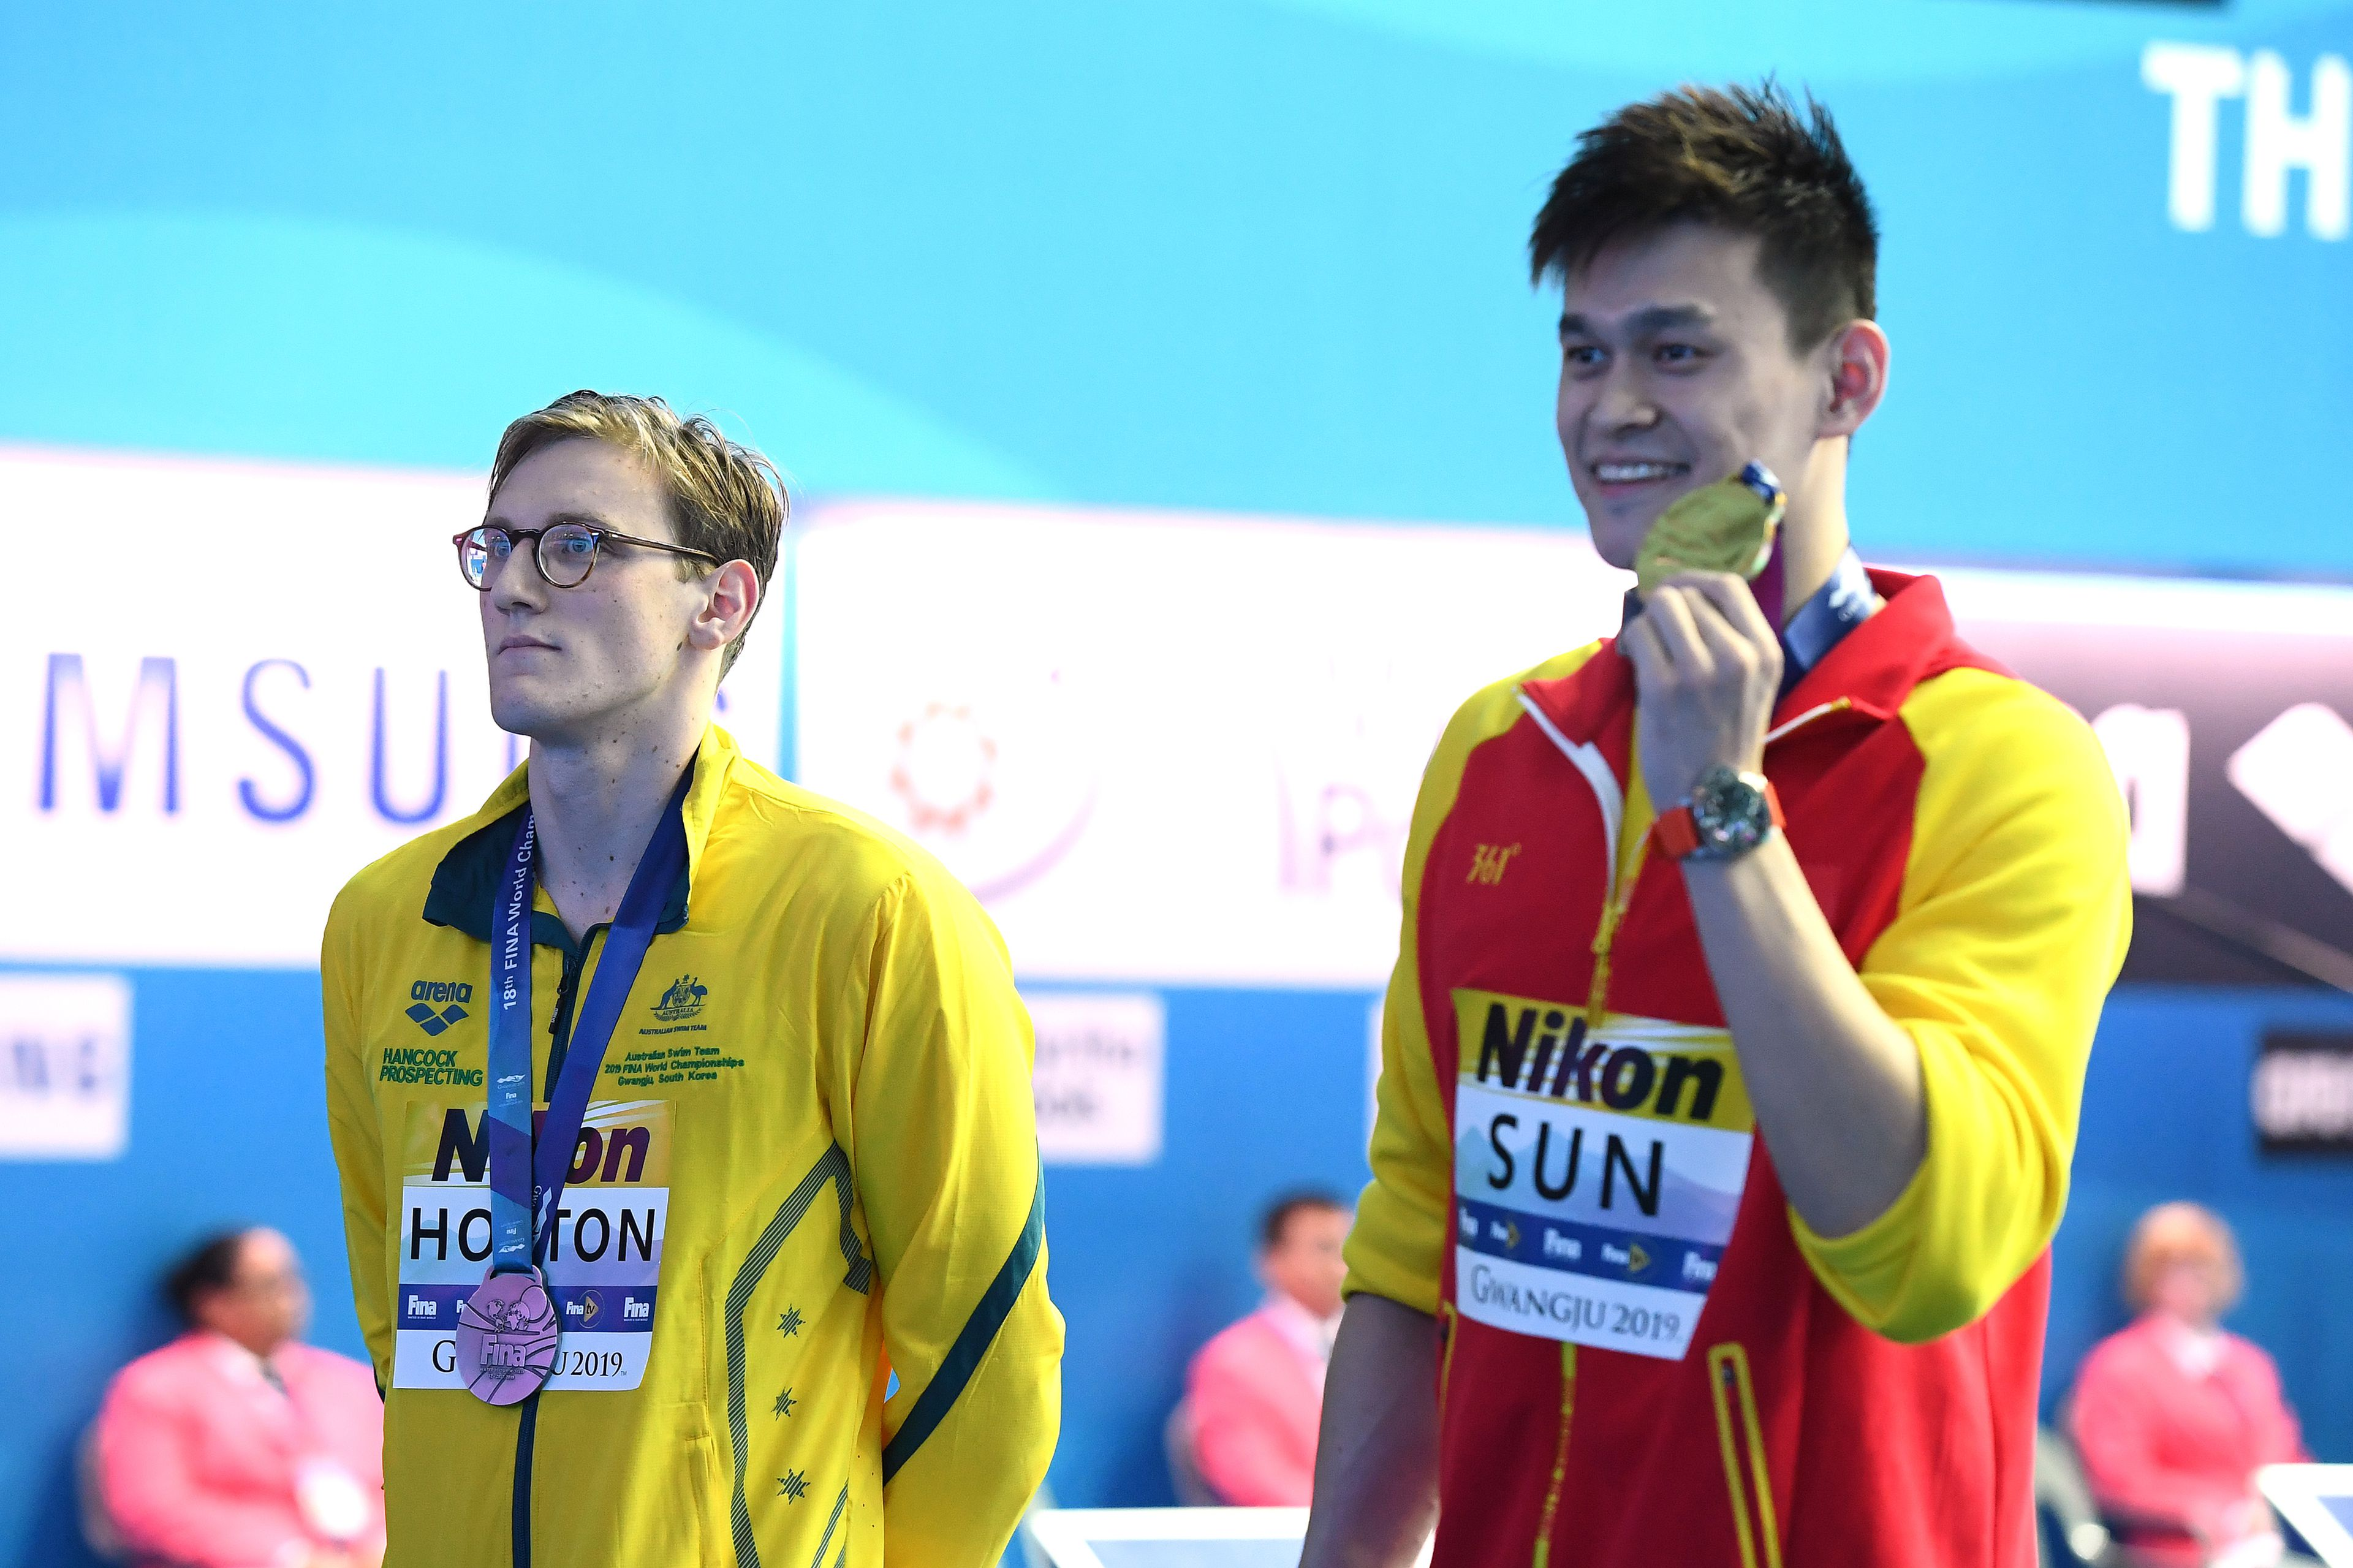 Silver medalist Mack Horton of Australia and gold medalist Sun Yang of China in 2019.